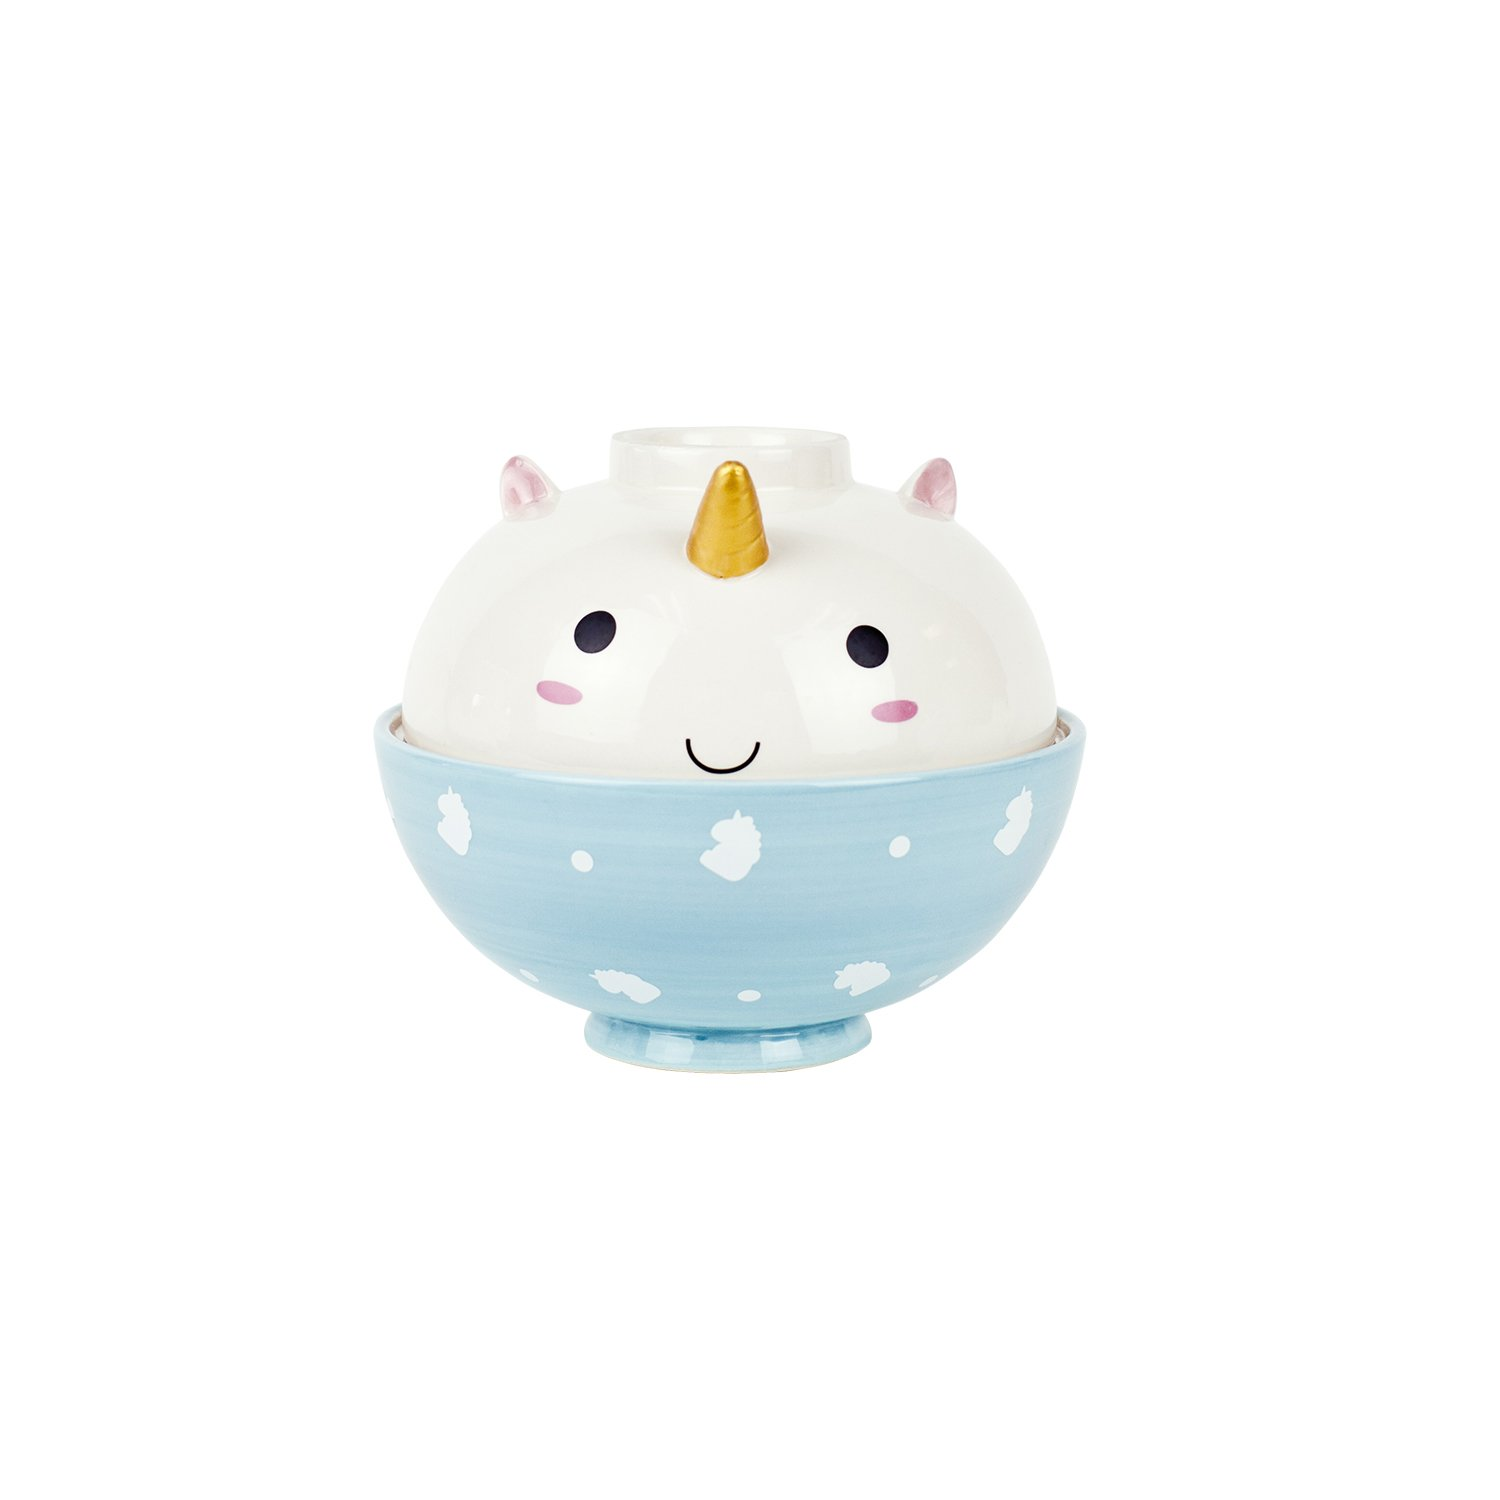 SMOKO Ceramic Hand Painted Elodie Unicorn Ramen Bowls, Microwave Safe 60006